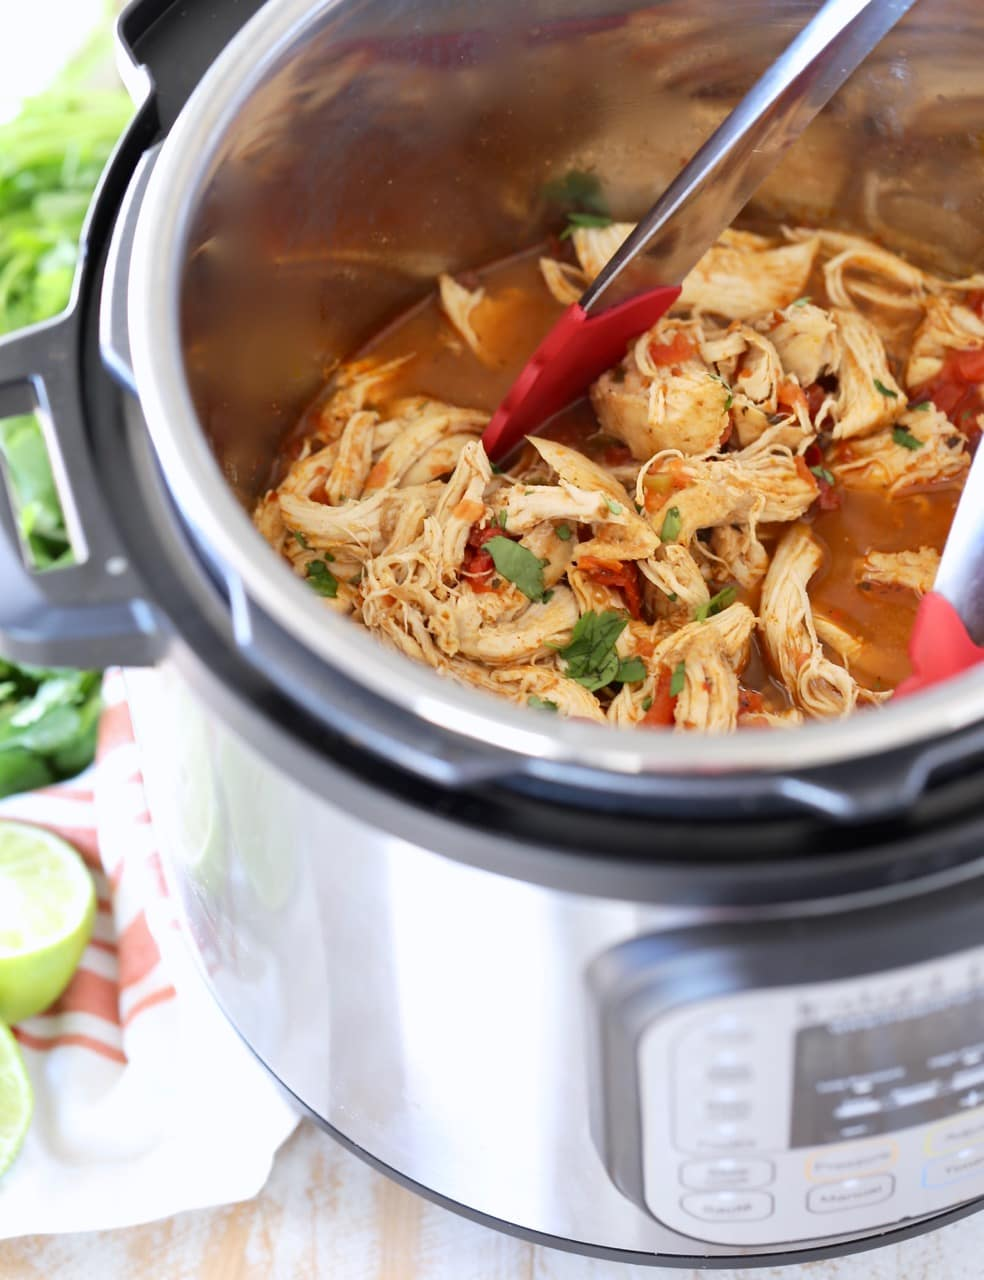 Shredded taco chicken in Instant Pot with red tongs and cilantro